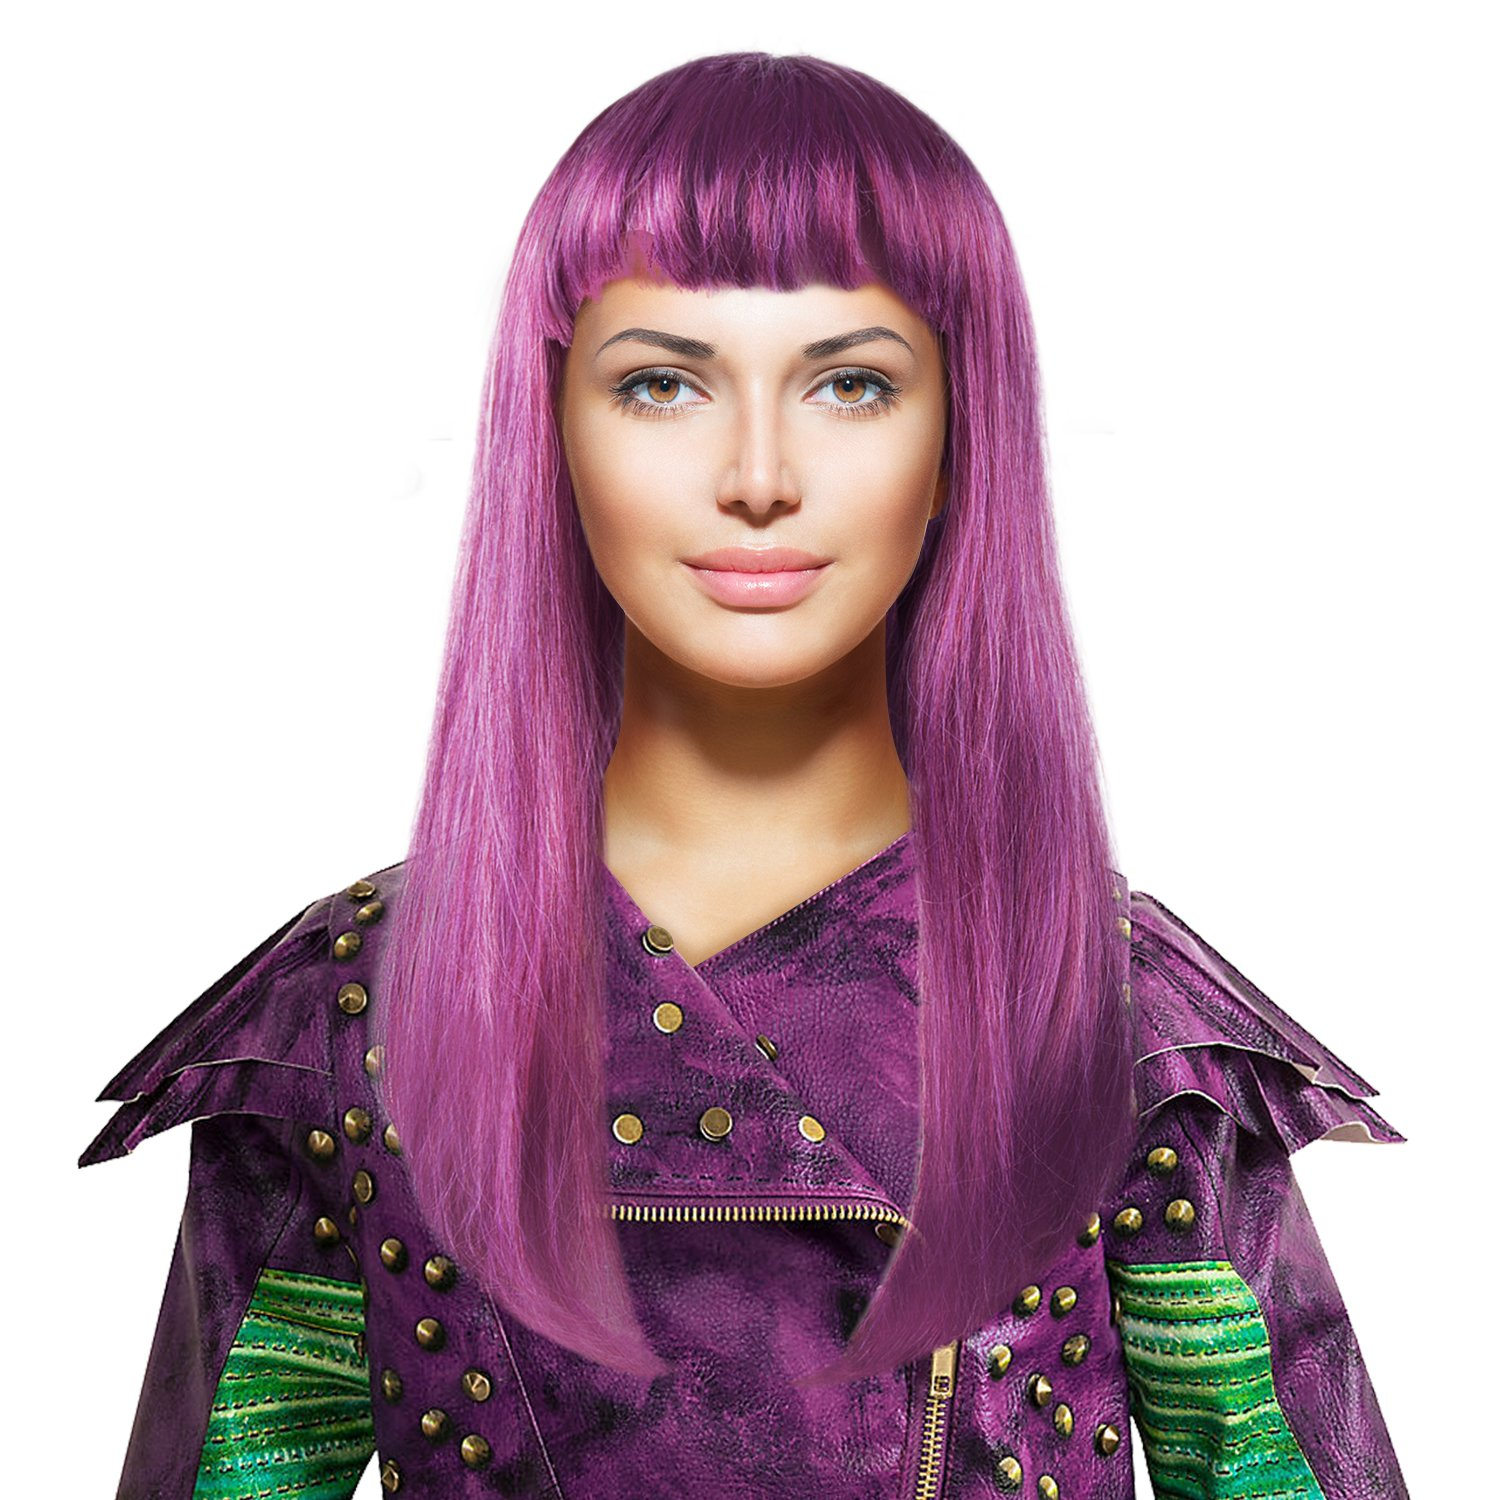 Cece Descendants 2 Mal Style Wig Purple Hairpiece w/Wig Cap Cosplay Costume Party For Women Girls